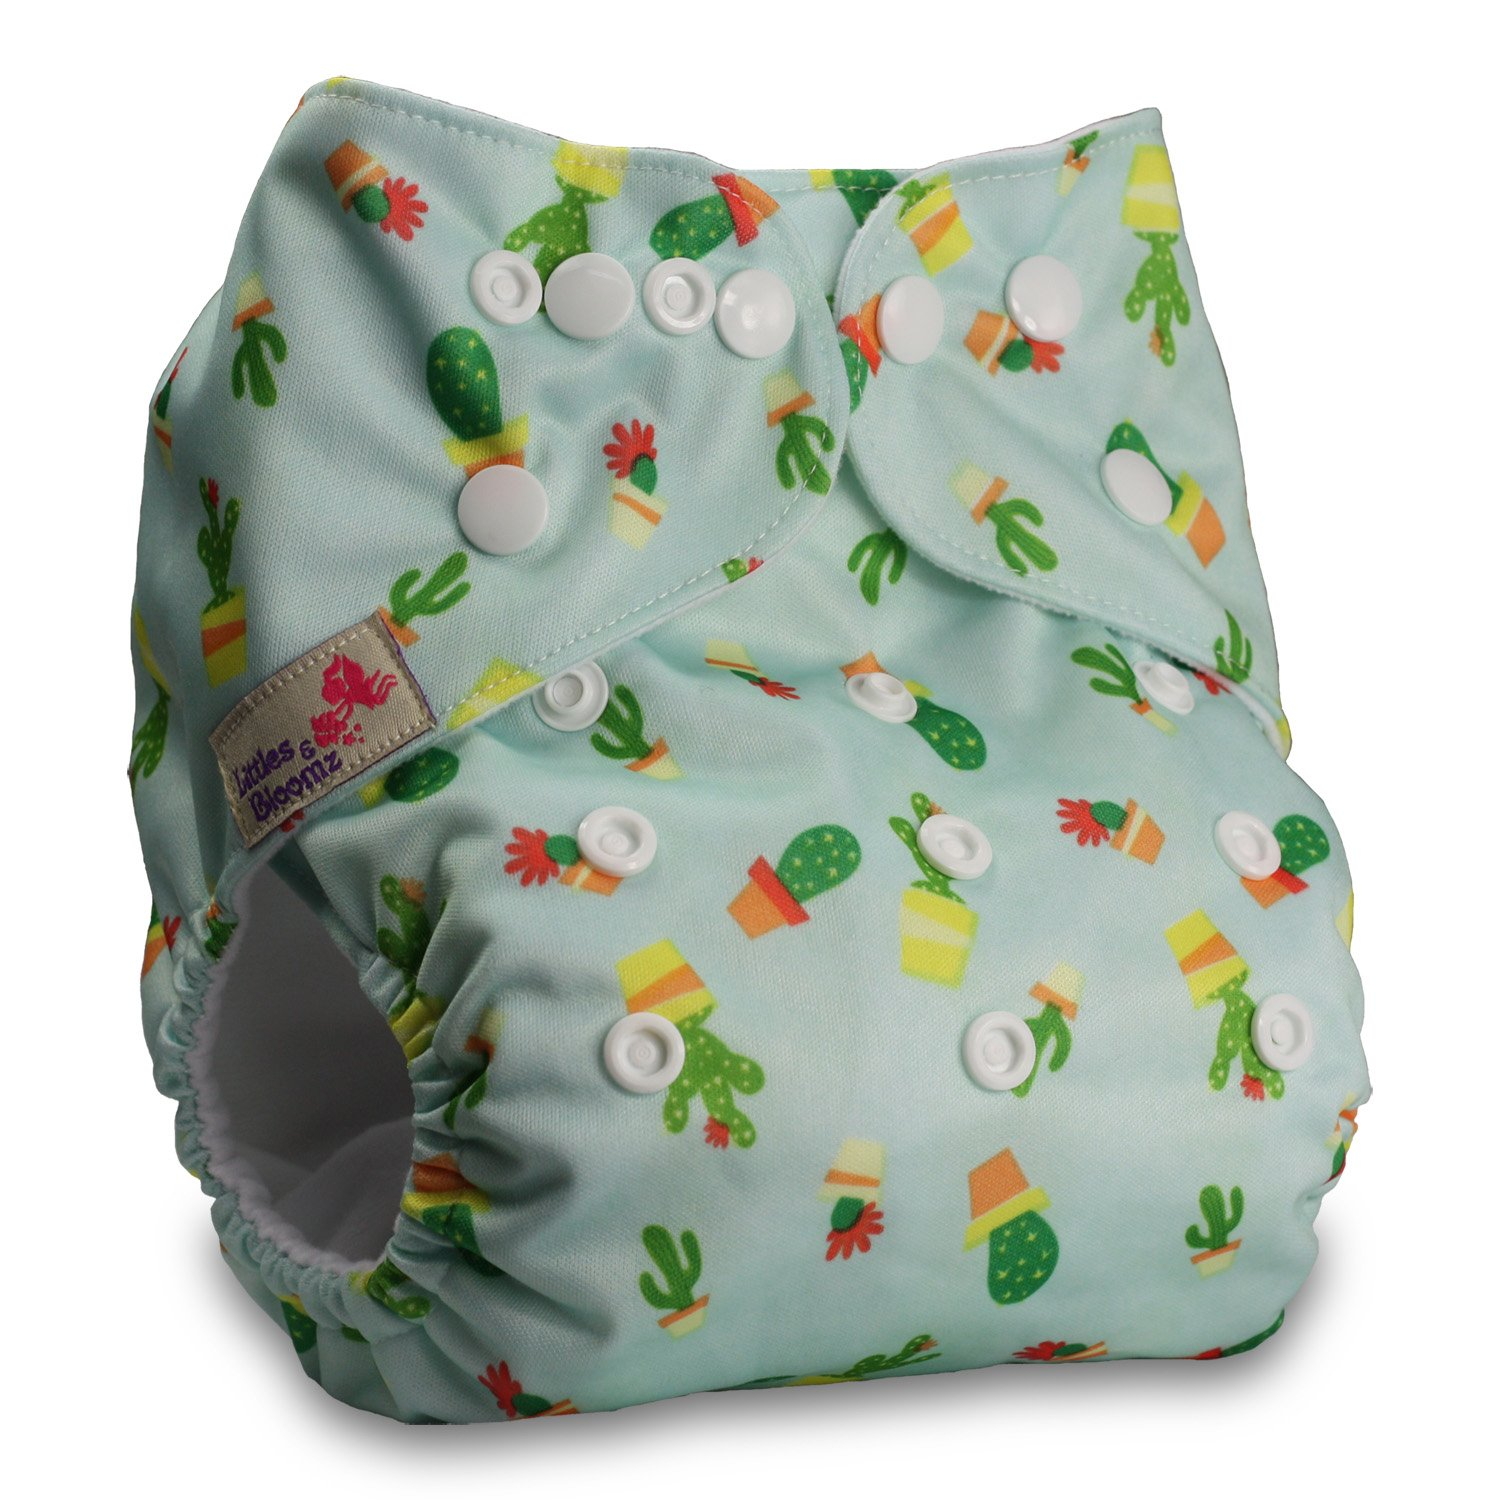 Littles & Bloomz, Reusable Pocket Cloth Nappy, Fastener: Popper, Set of 1, Pattern 20, With 1 Microfibre Insert